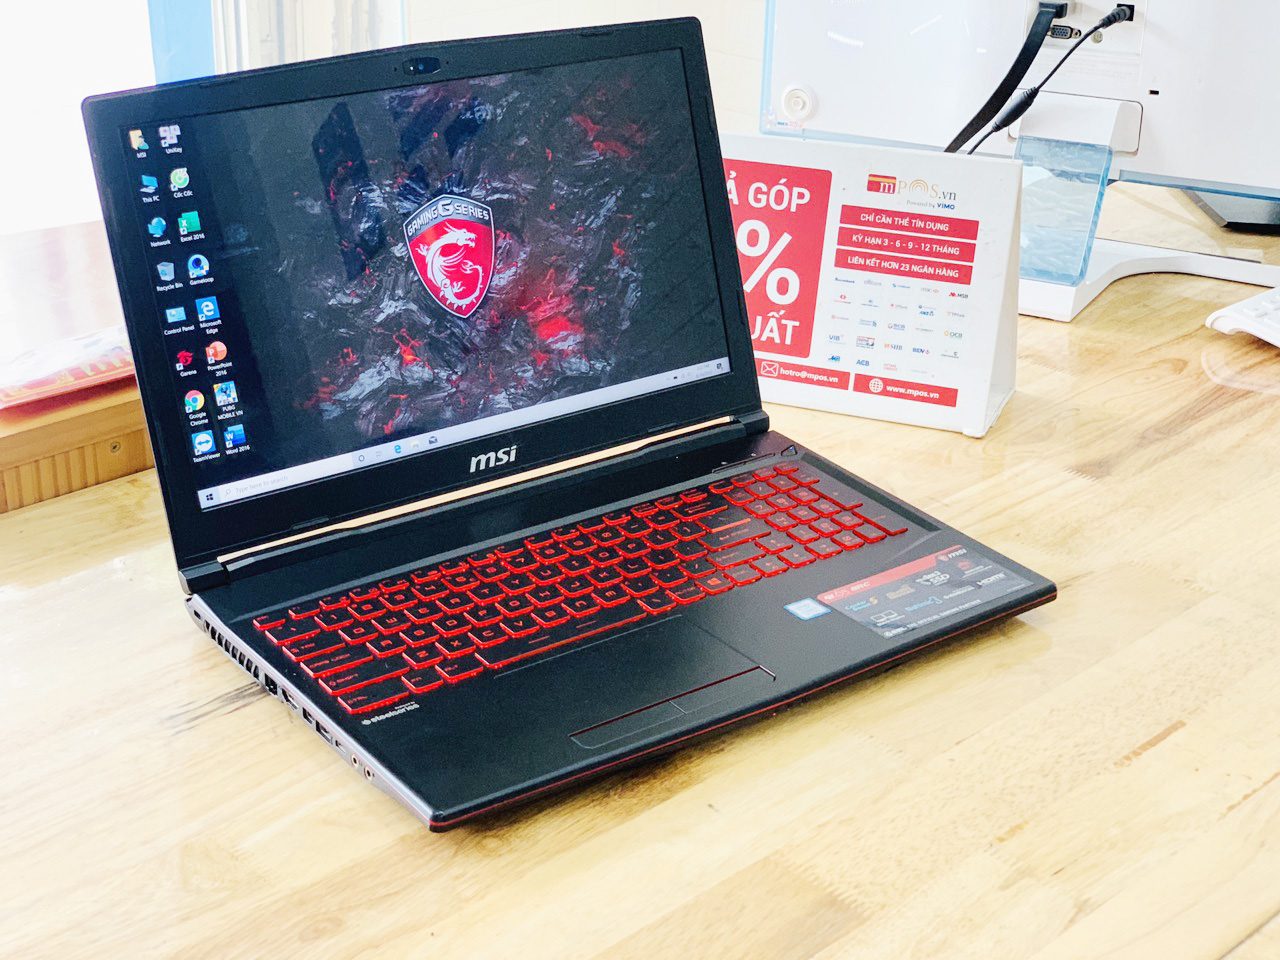 Laptop Gaming MSI GL63 i7-8750H Ram 8G SSD 128G + HDD 1TB Nvidia GTX1050 15.6 inch Full HD